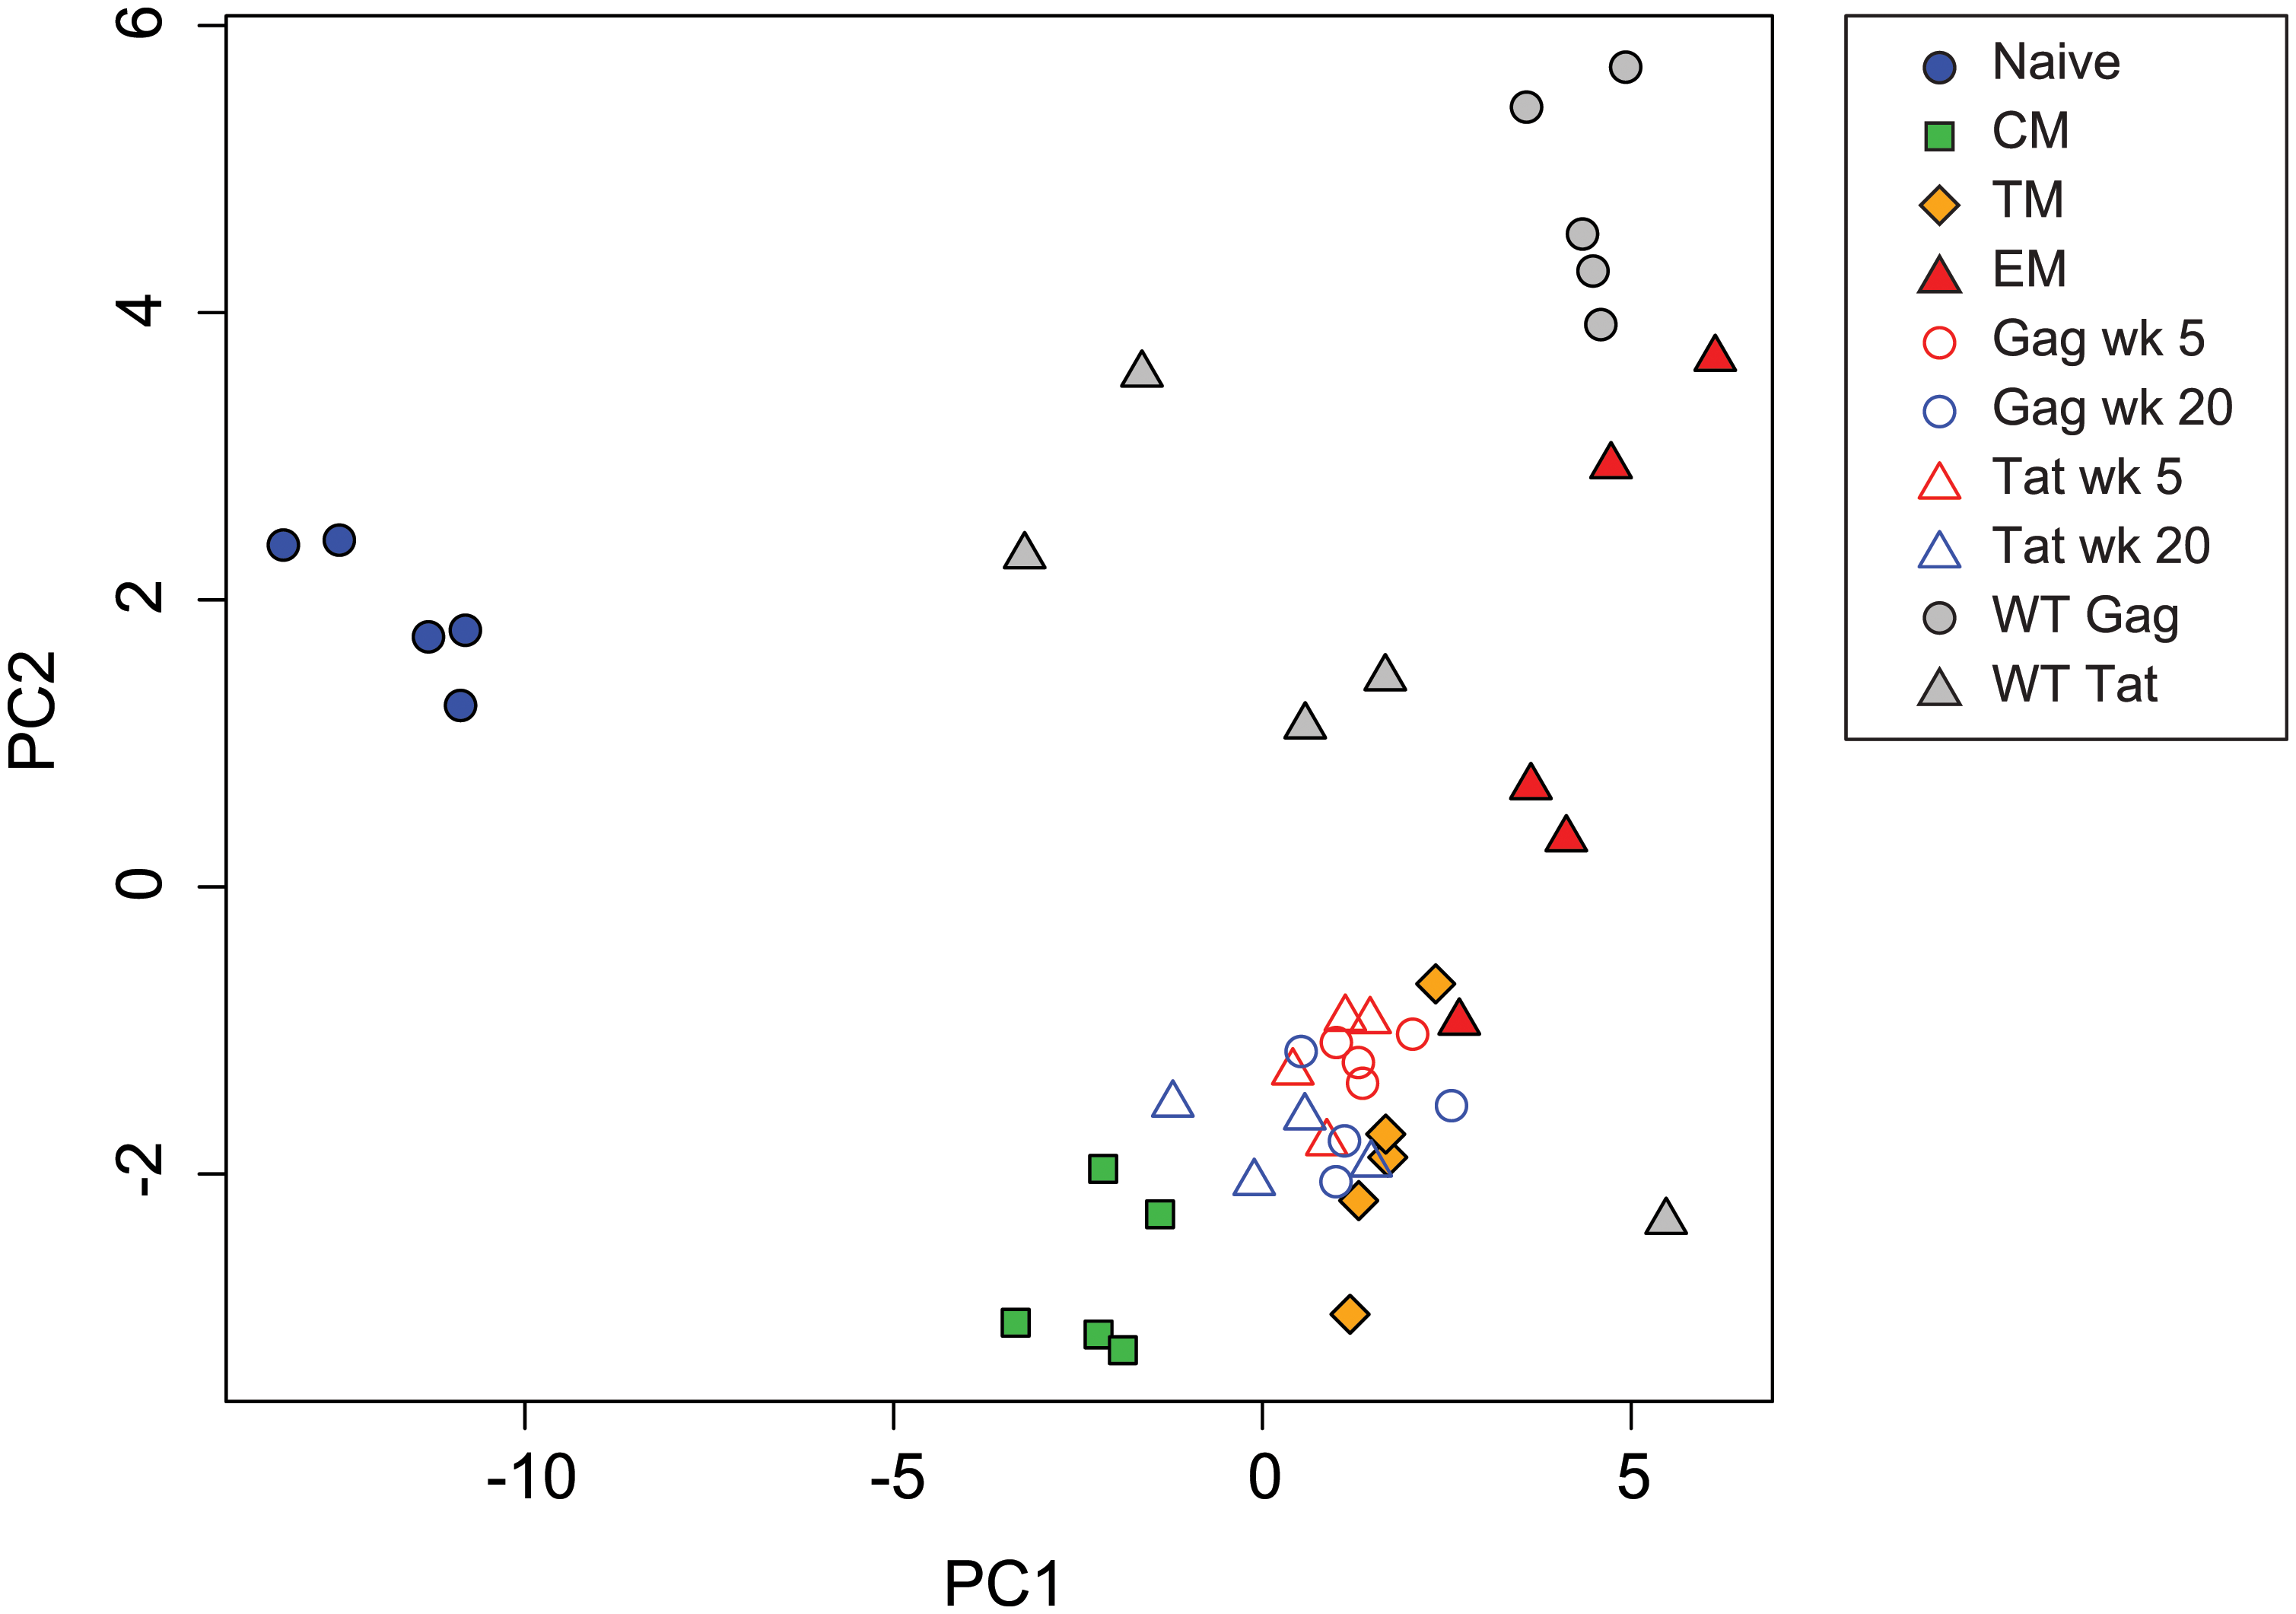 Principal component analysis of transcription factor expression profiles from SIV-specific MHC tetramer-sorted CD8<sup>+</sup> T cells from animals vaccinated with SIVΔnef, animals infected with wild-type SIV, and sorted CD8<sup>+</sup> T cell subsets.